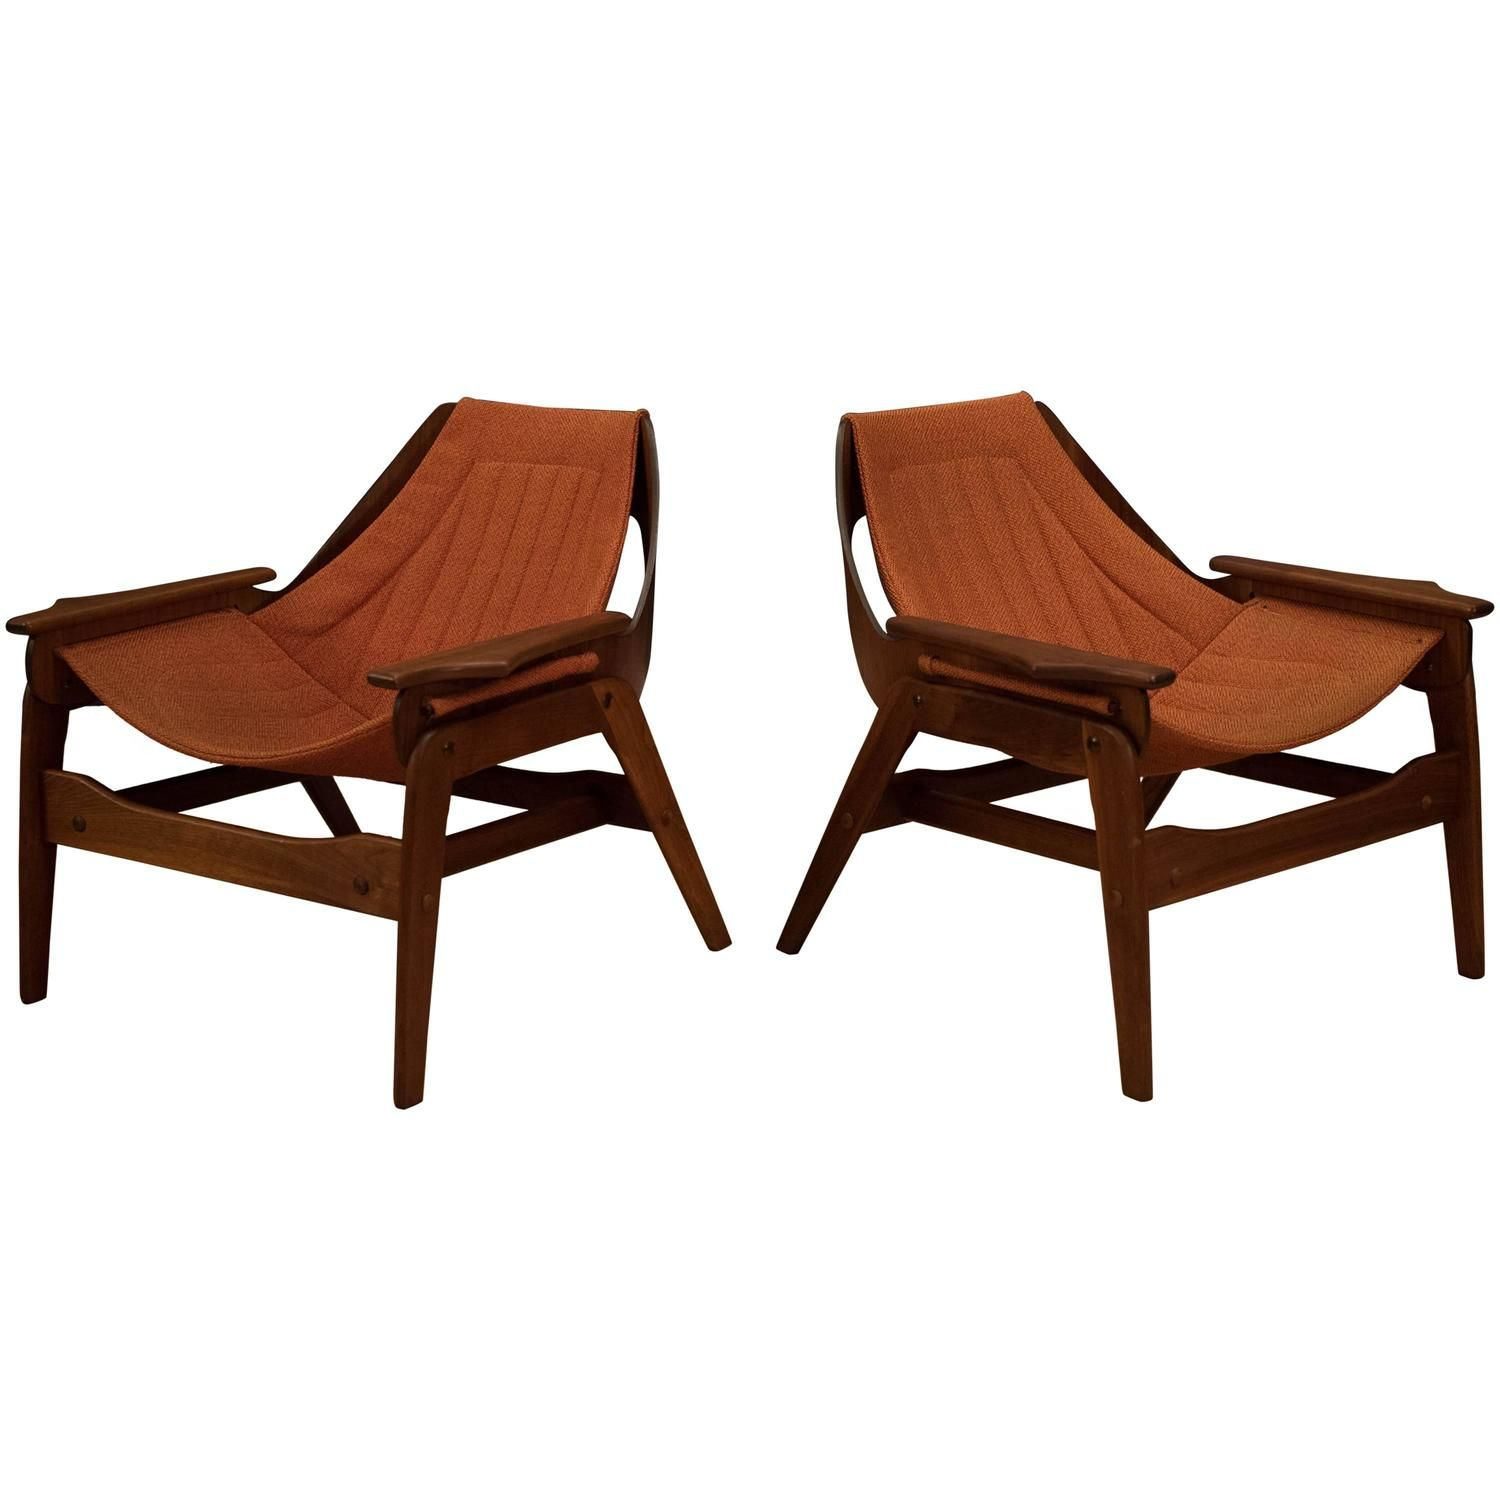 Antique lounge chairs - Mid Century Jerry Johnson Walnut Sling Chairs